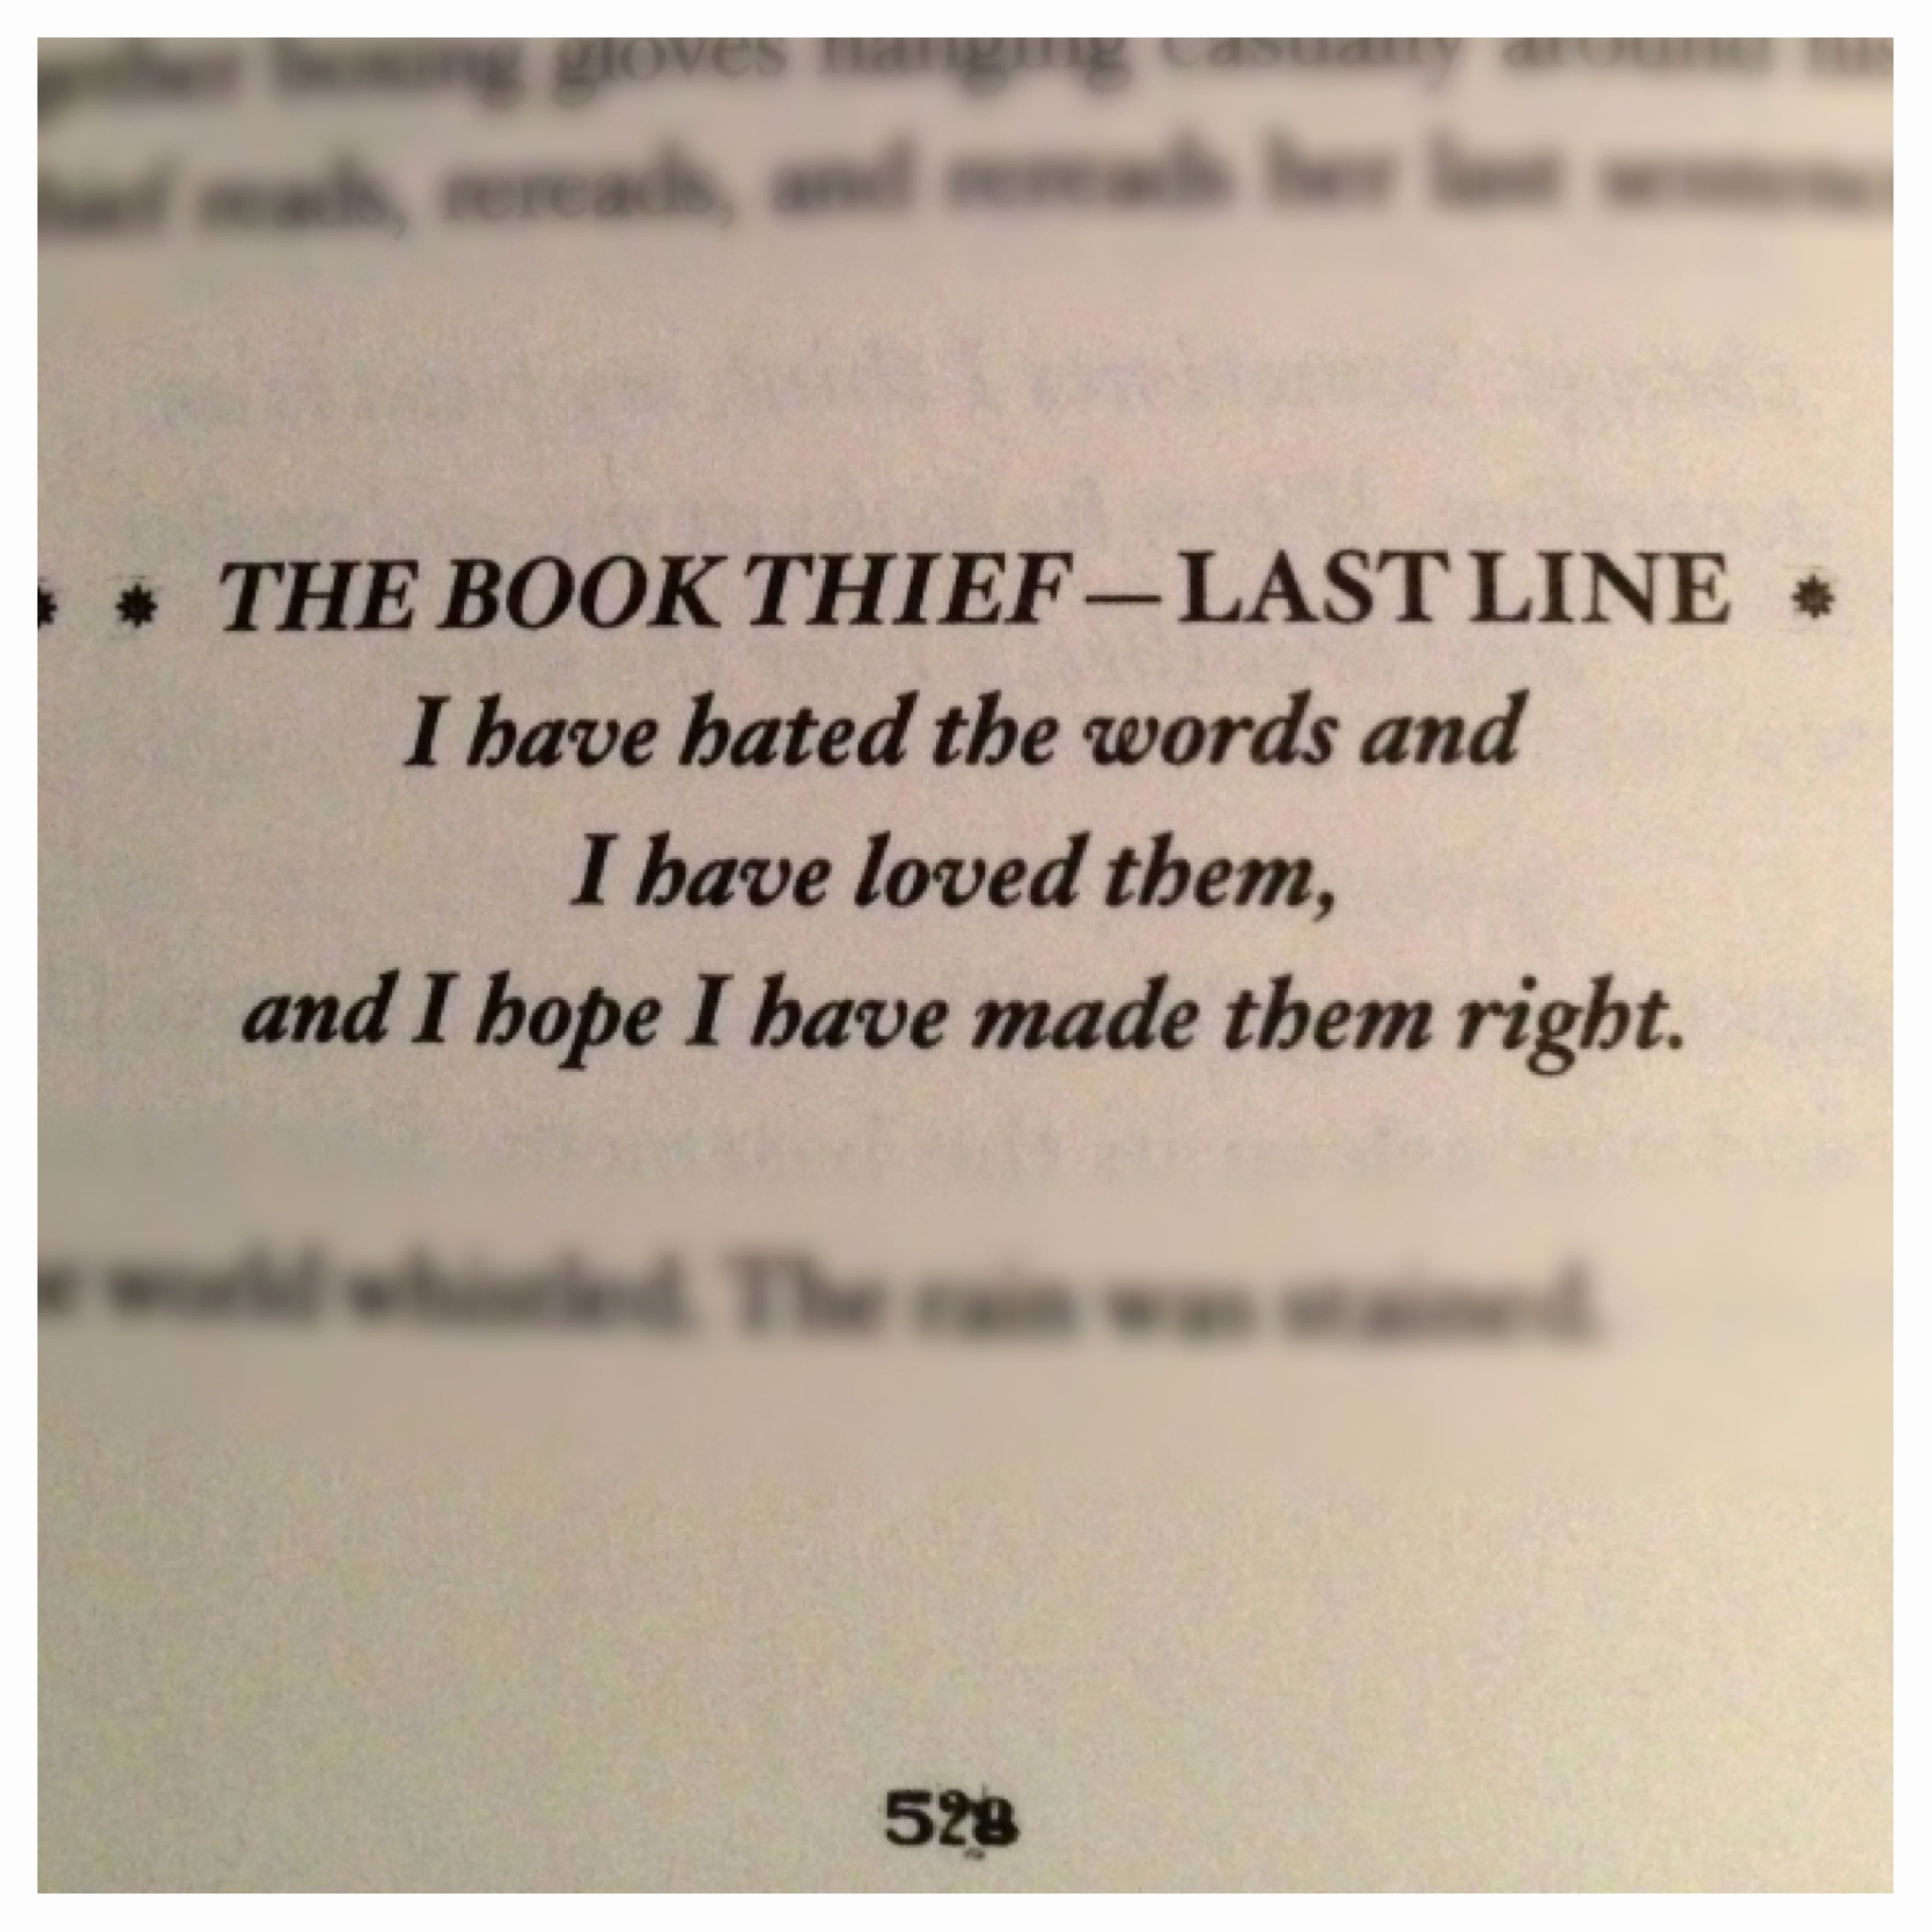 019 Essay Example The Book Thief Power Of Words Quotes ...